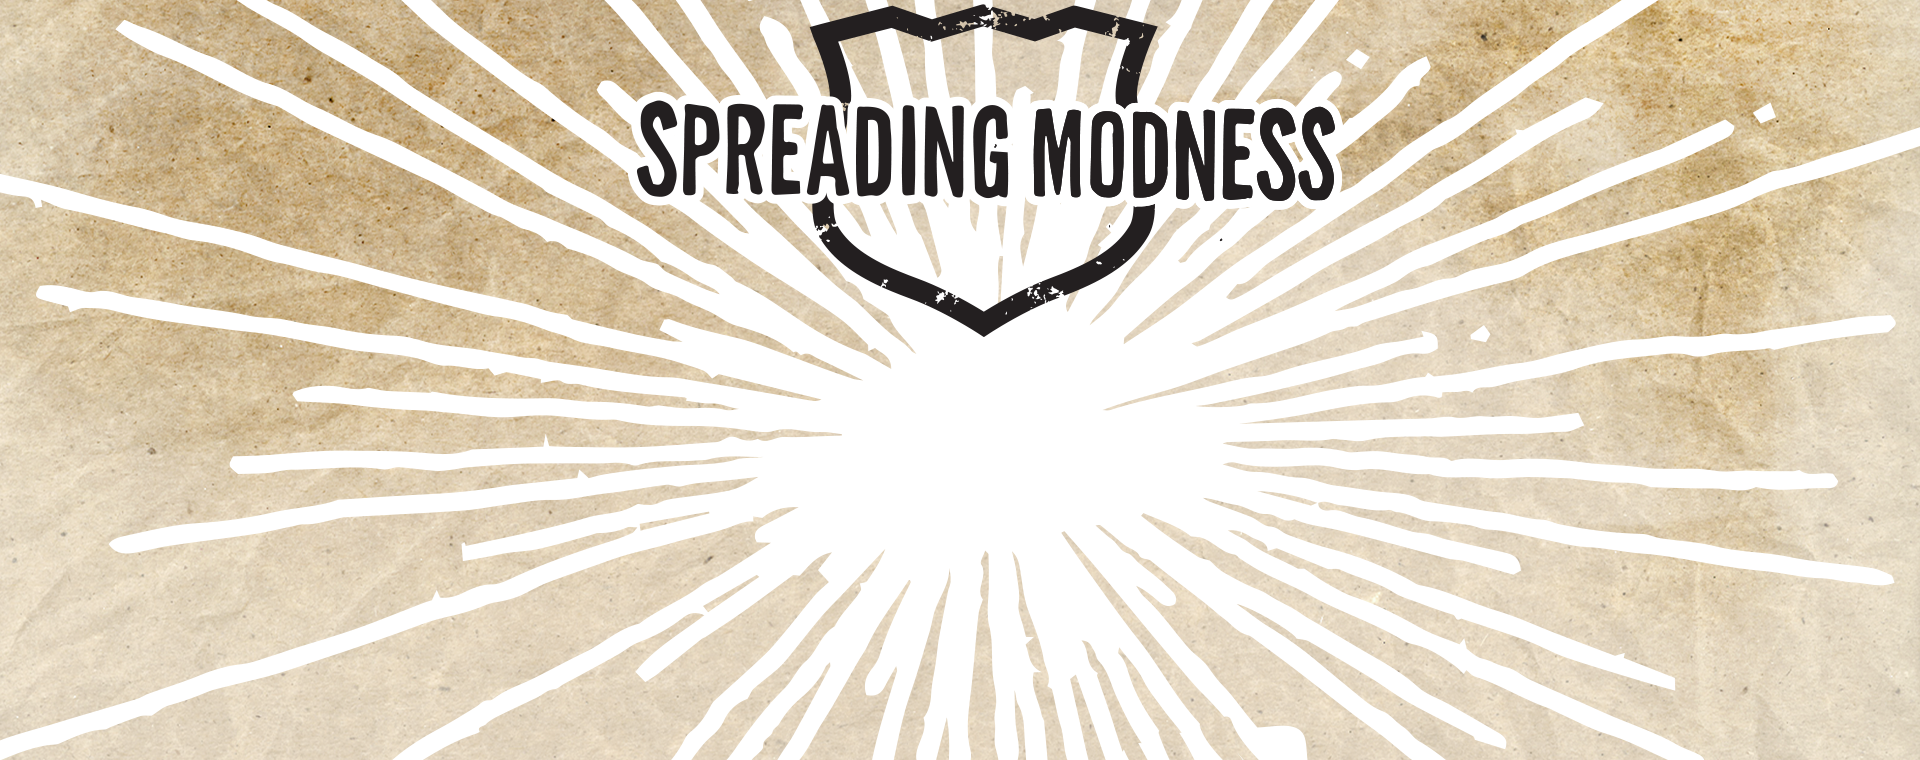 Hidpi spreading modness banner take 2